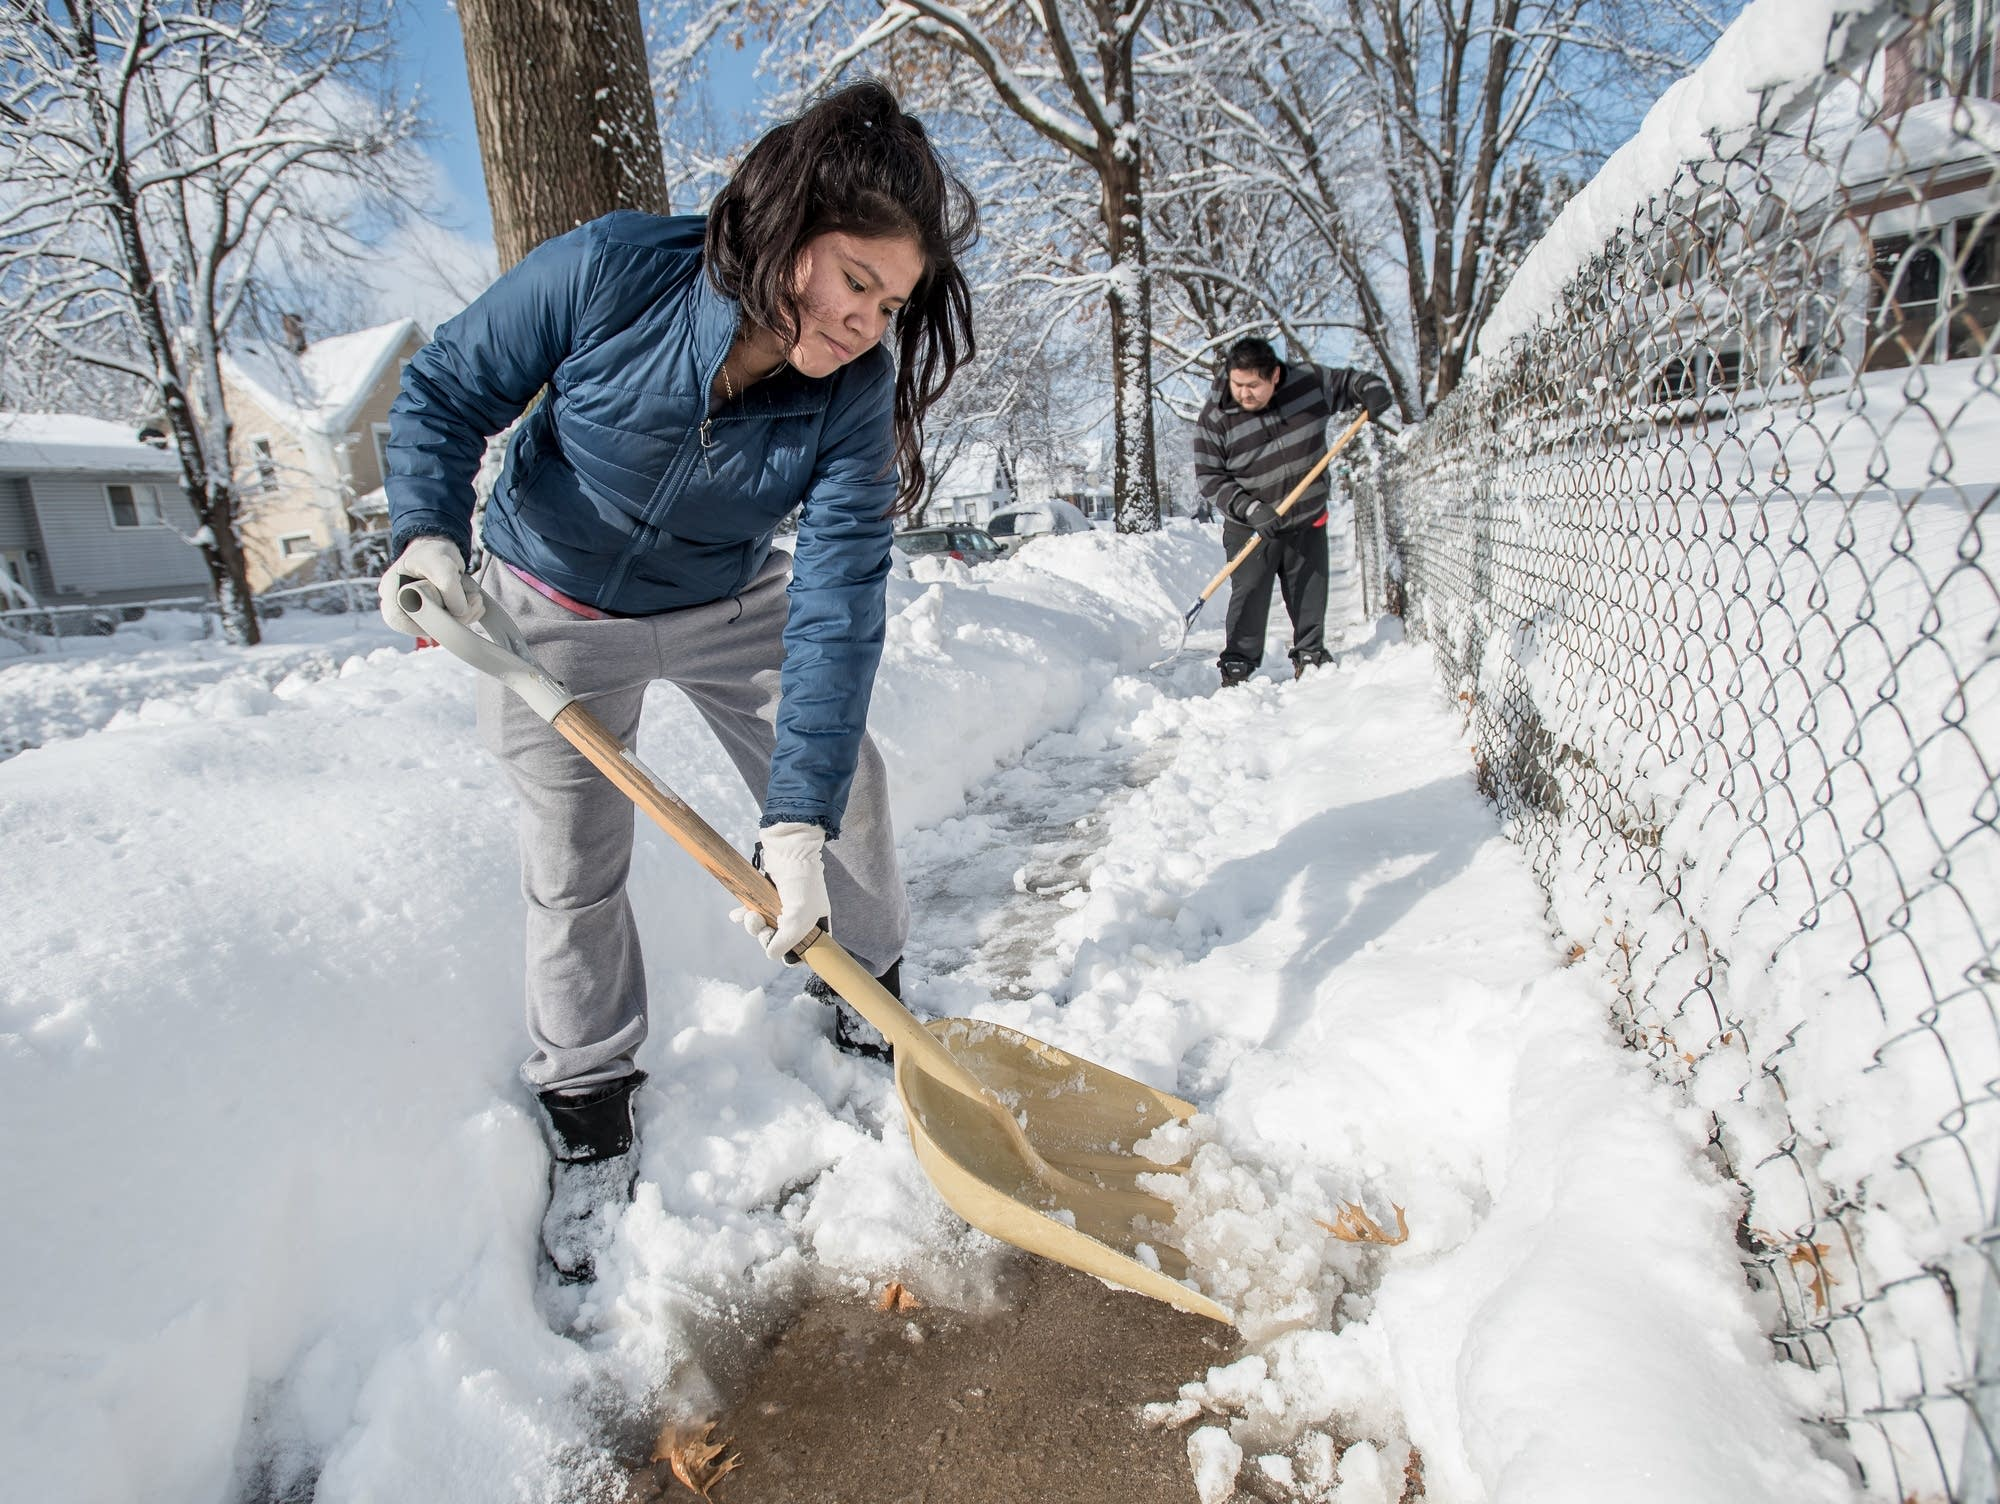 Joanna Peralta, 14, and her father Reme Peralta, 35, shovel the snow